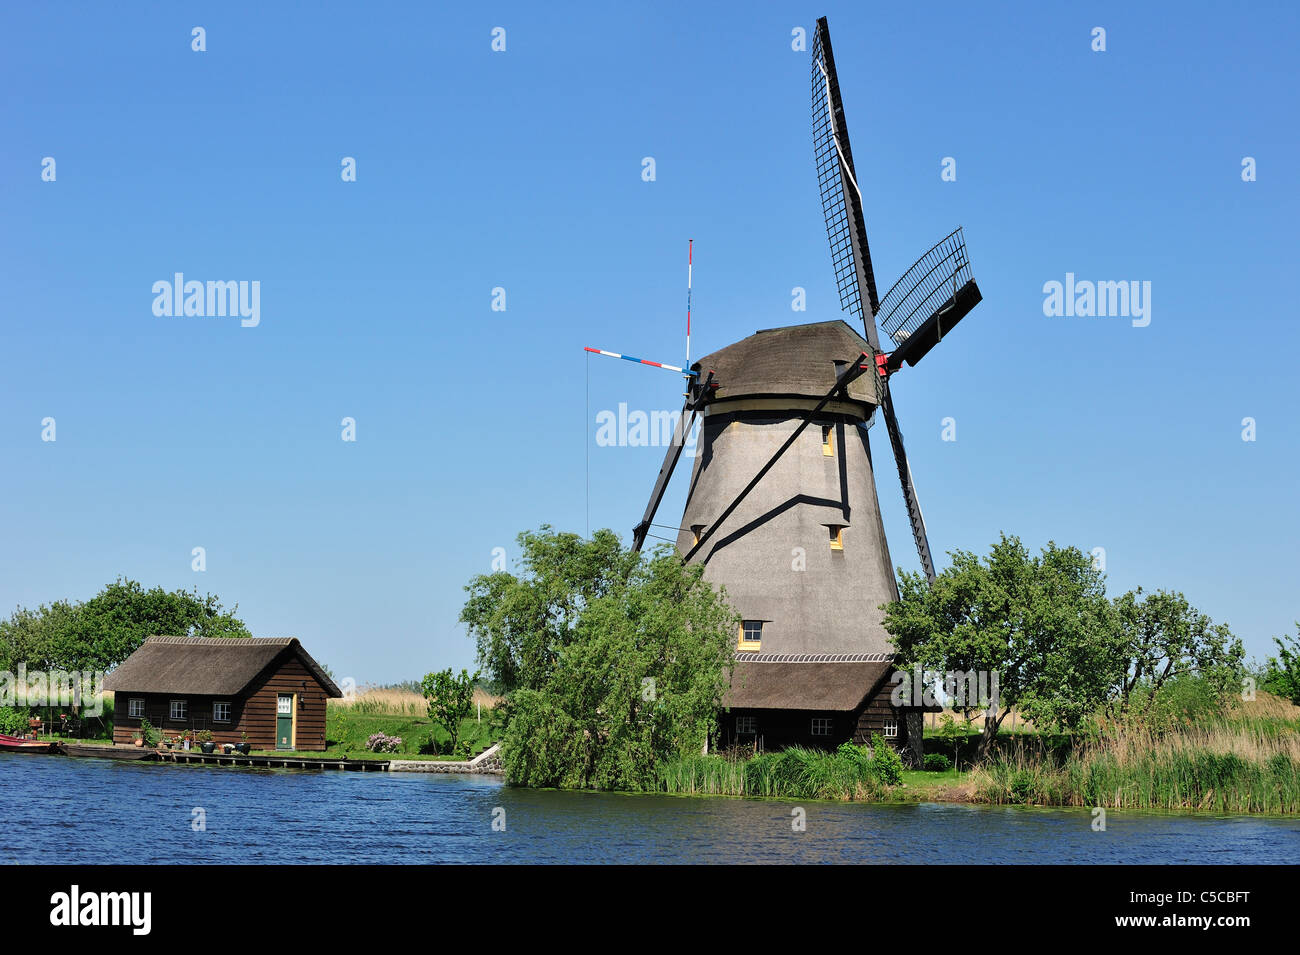 Thatched polder windmill at Kinderdijk, a UNESCO World Heritage Site at South Holland, the Netherlands - Stock Image